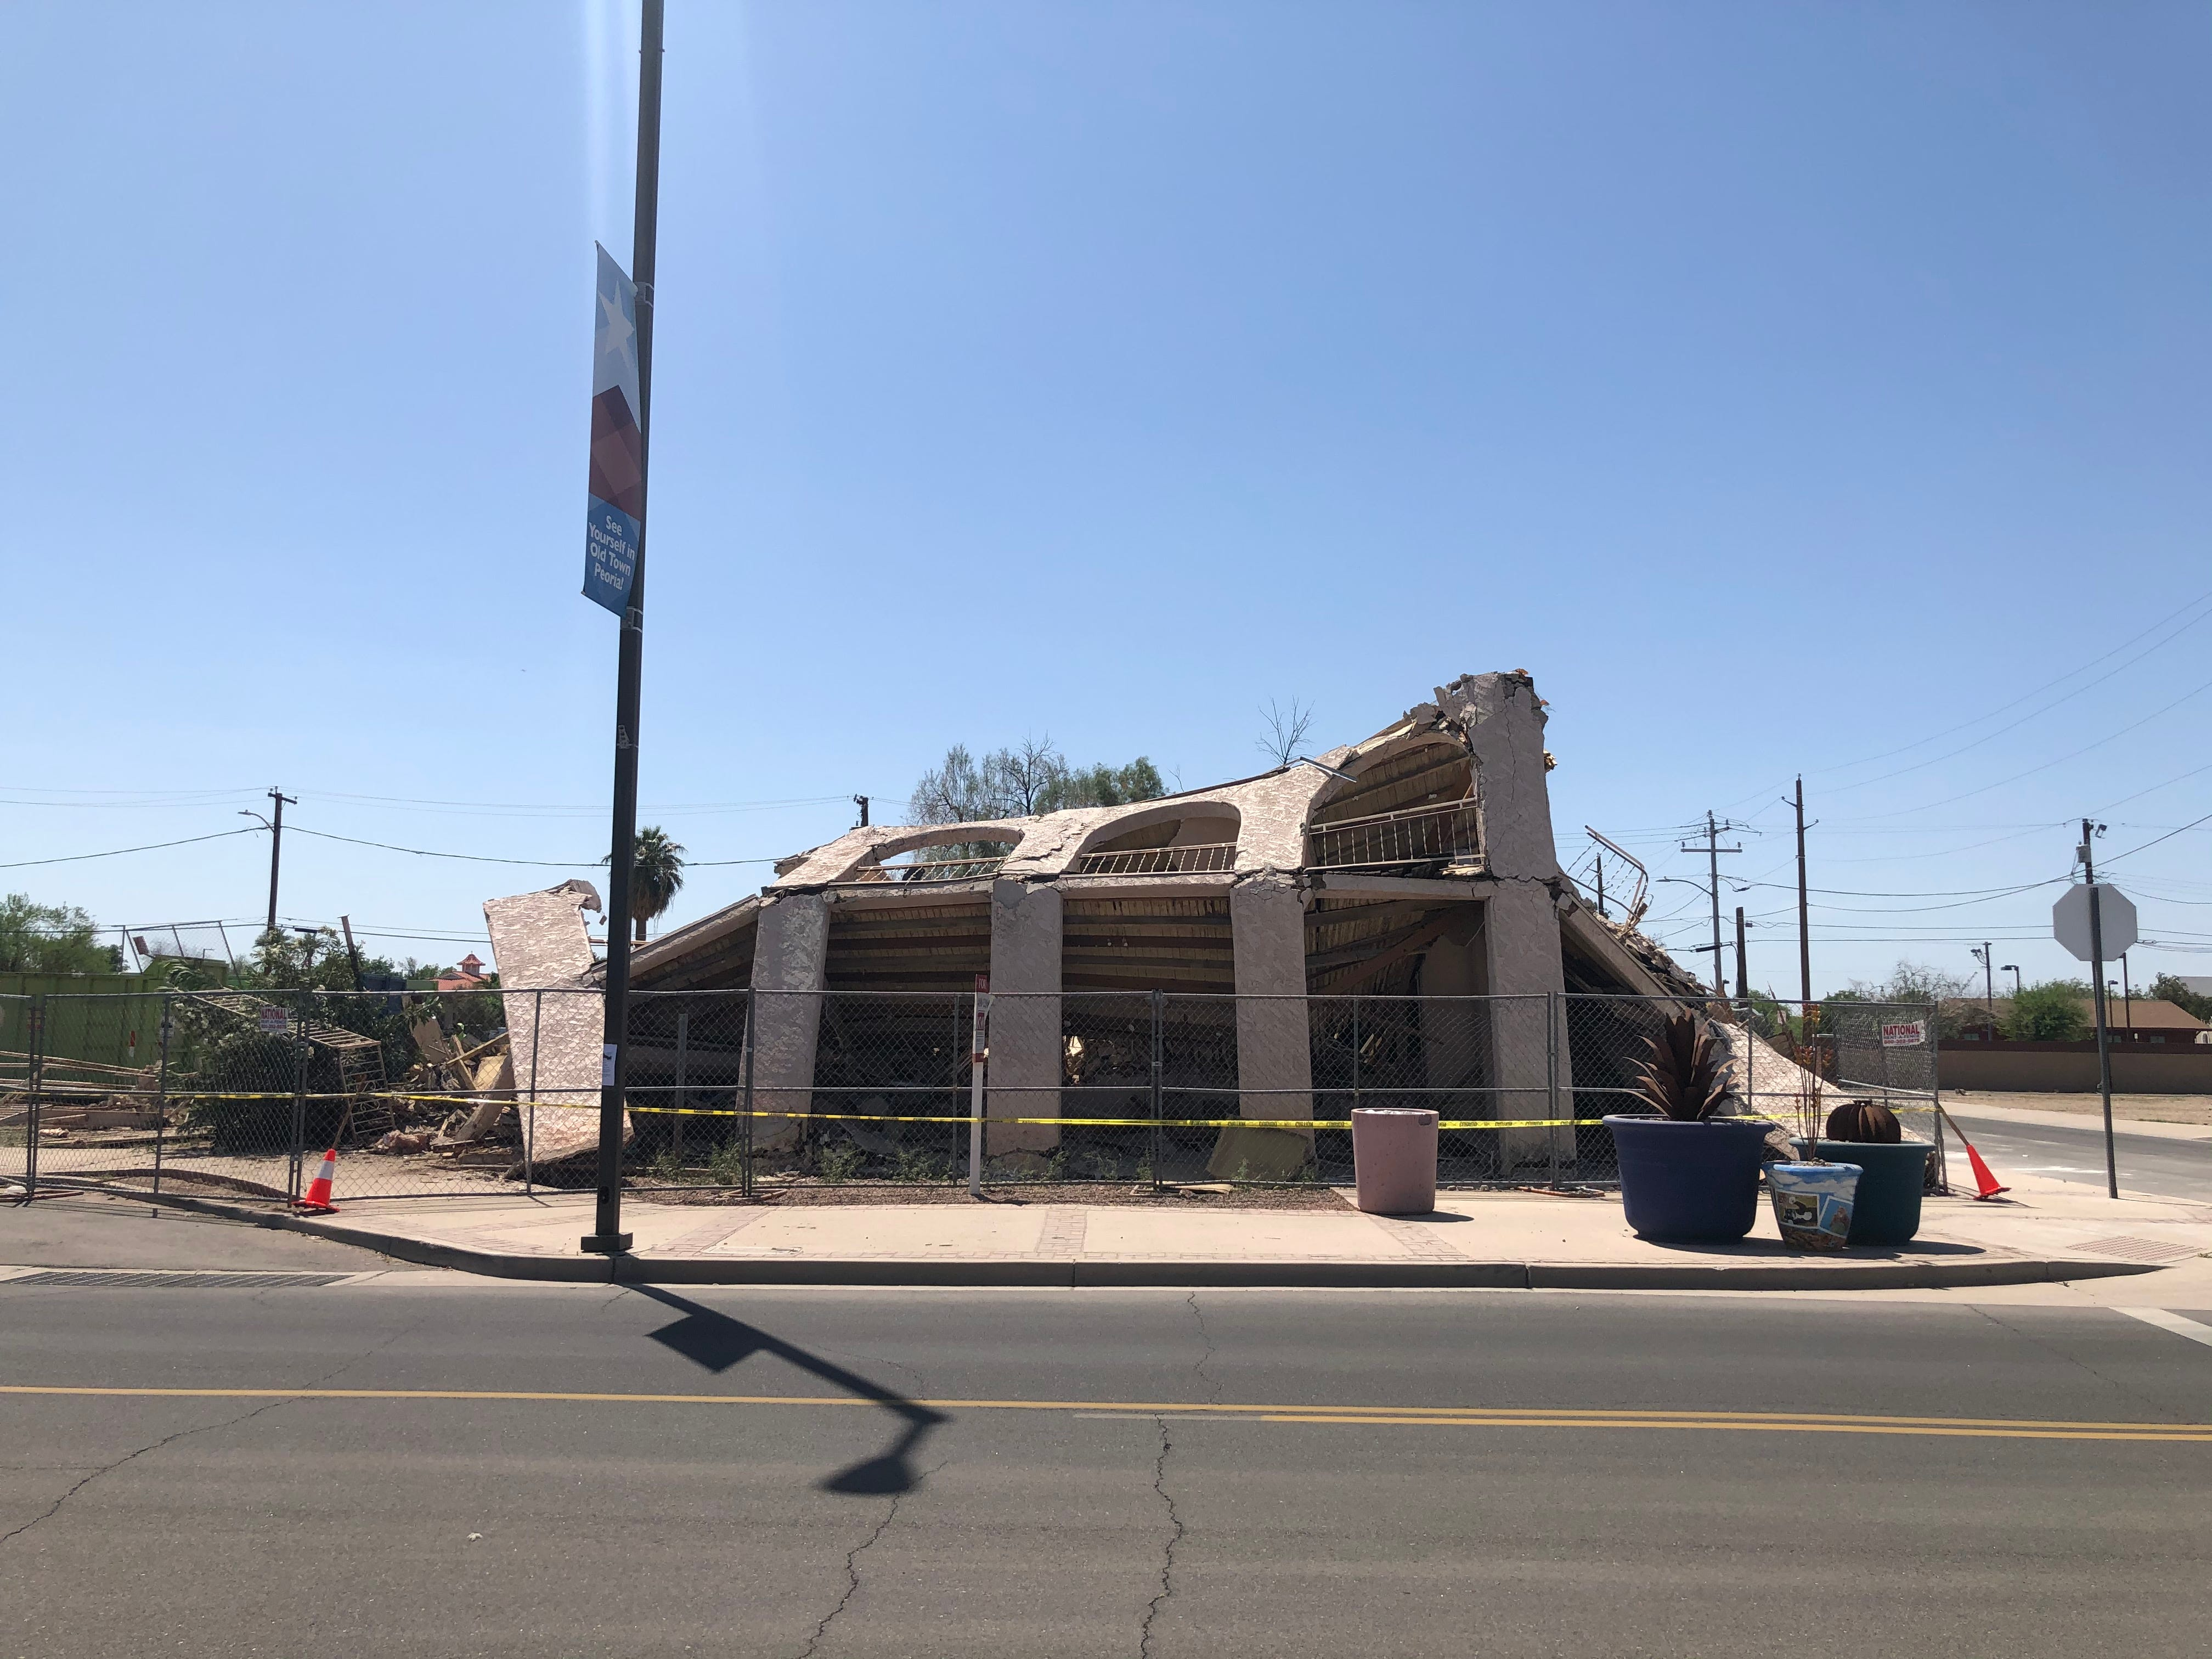 103-year-old Edwards Hotel in Peoria demolished